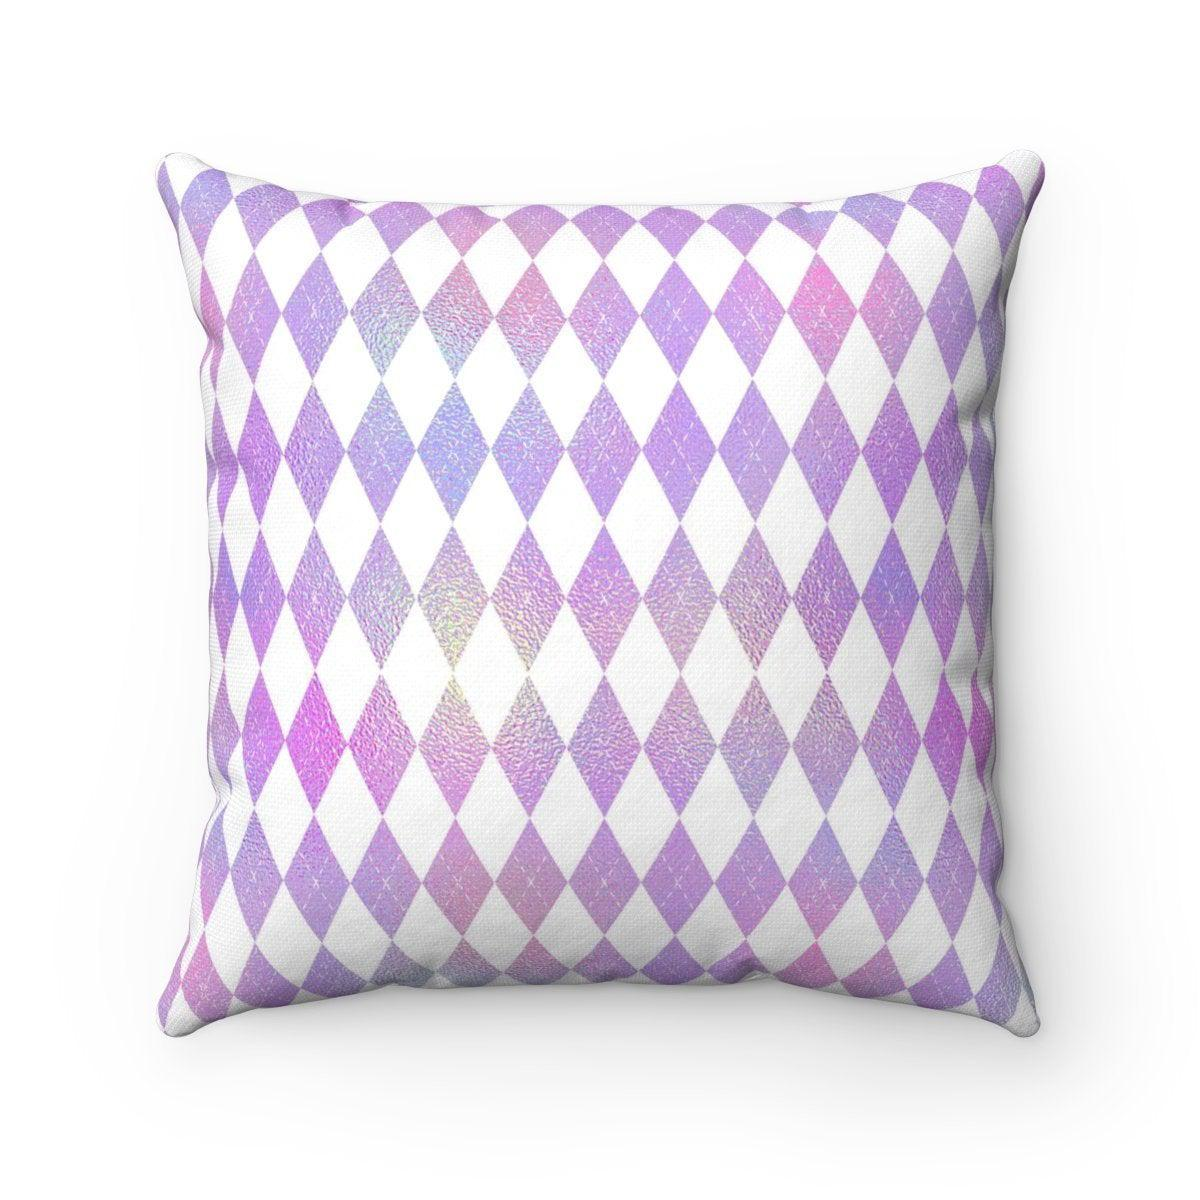 2 in 1 Hologram chevron and striped geometric decorative cushion cover-Home Decor - Decorative Accents - Pillows & Throws - Decorative Pillows-Maison d'Elite-14x14-Très Elite